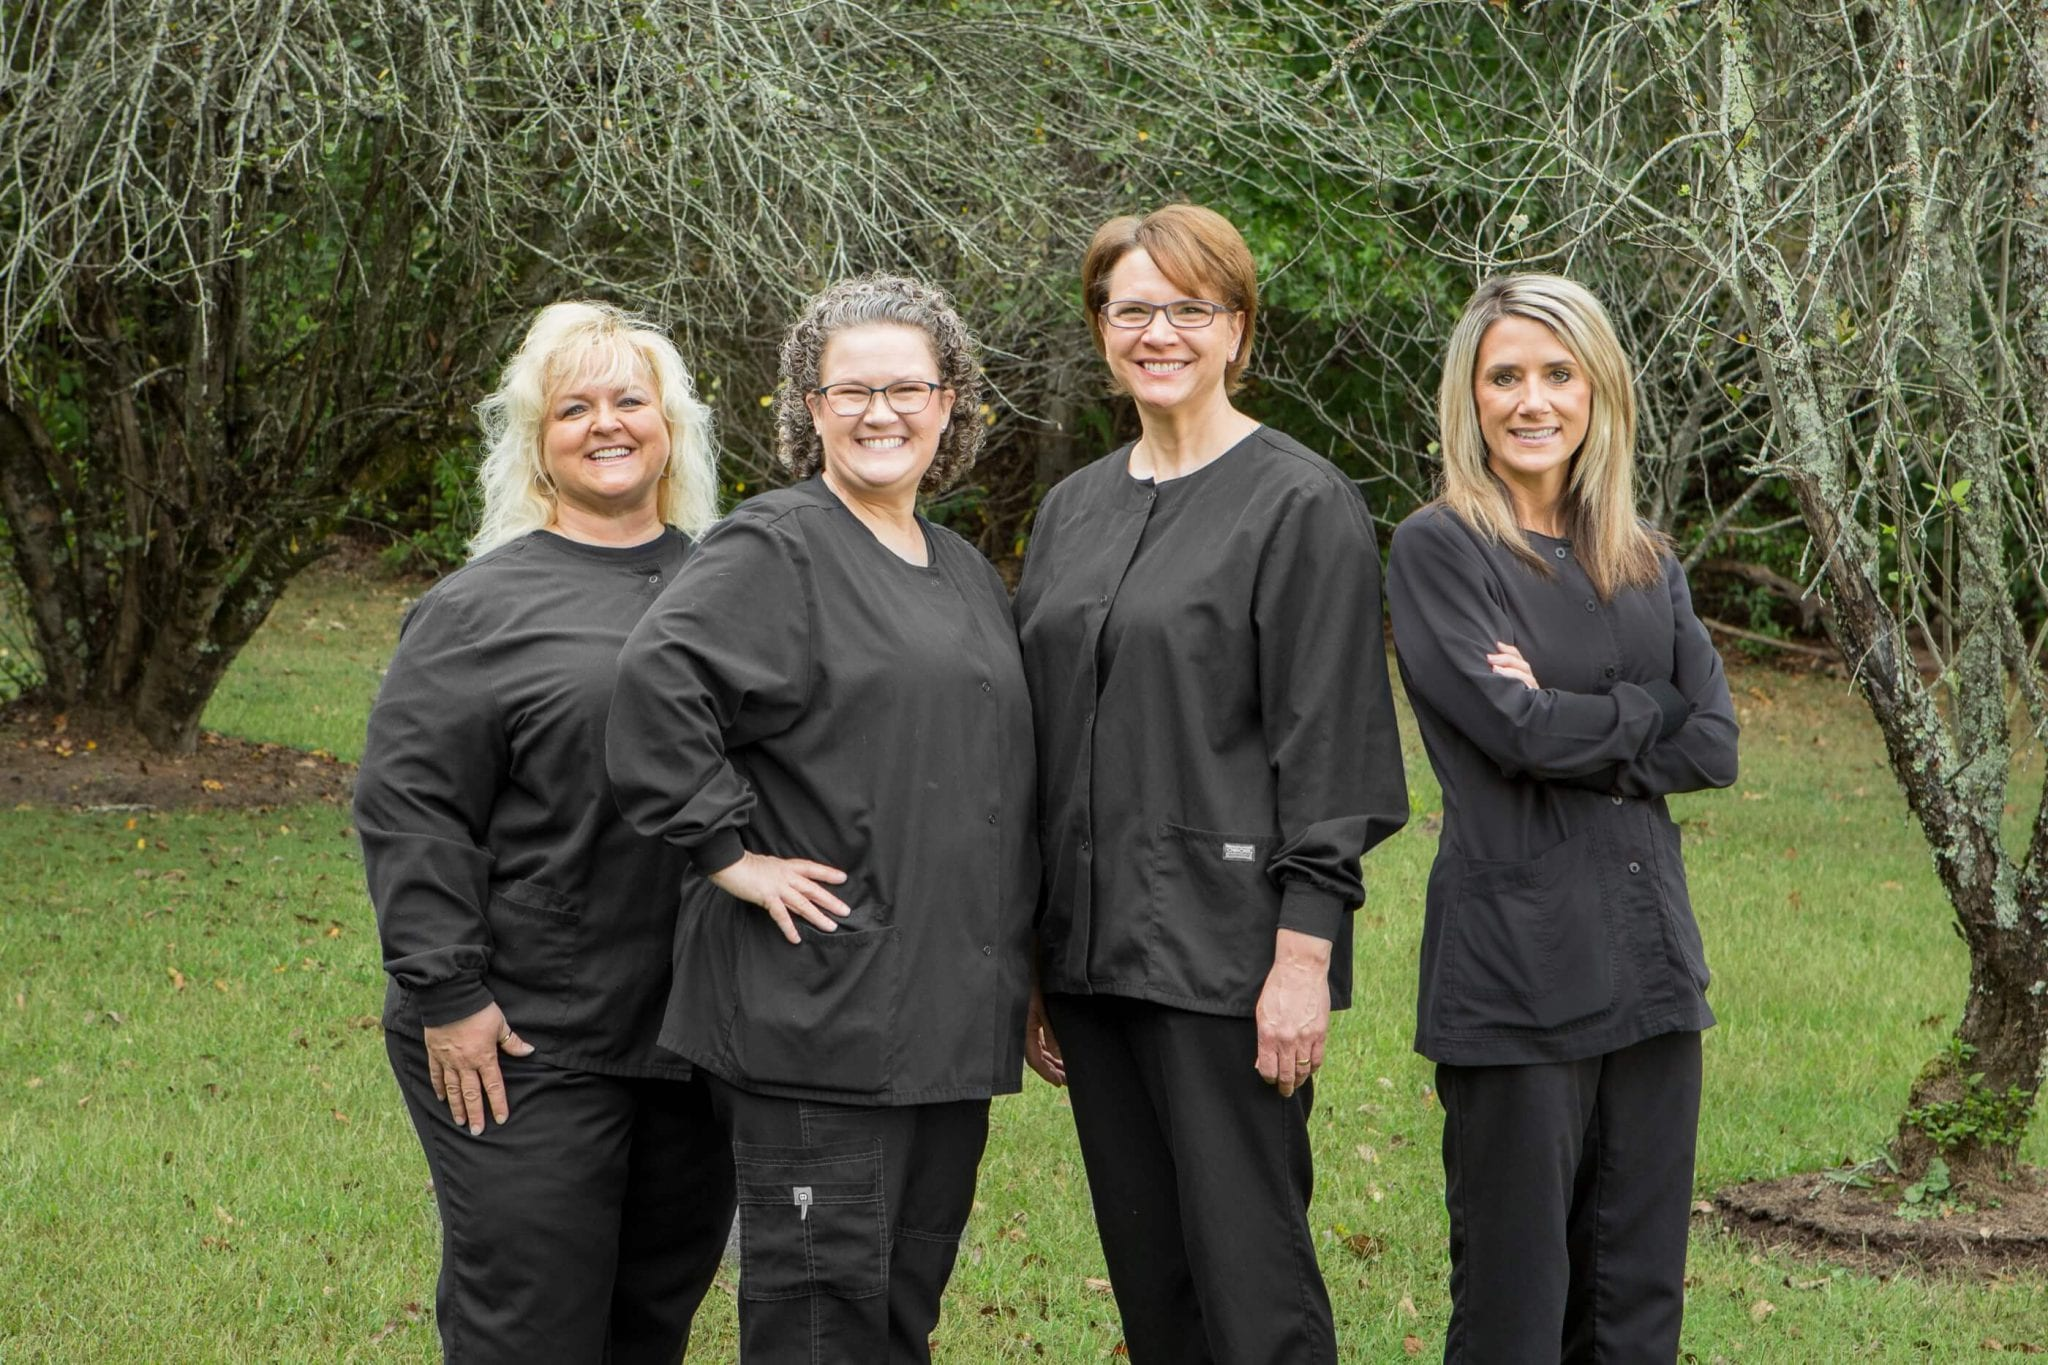 The Dental Assistant Team of Baldwell and Guffey Family Dentistry Standing Together